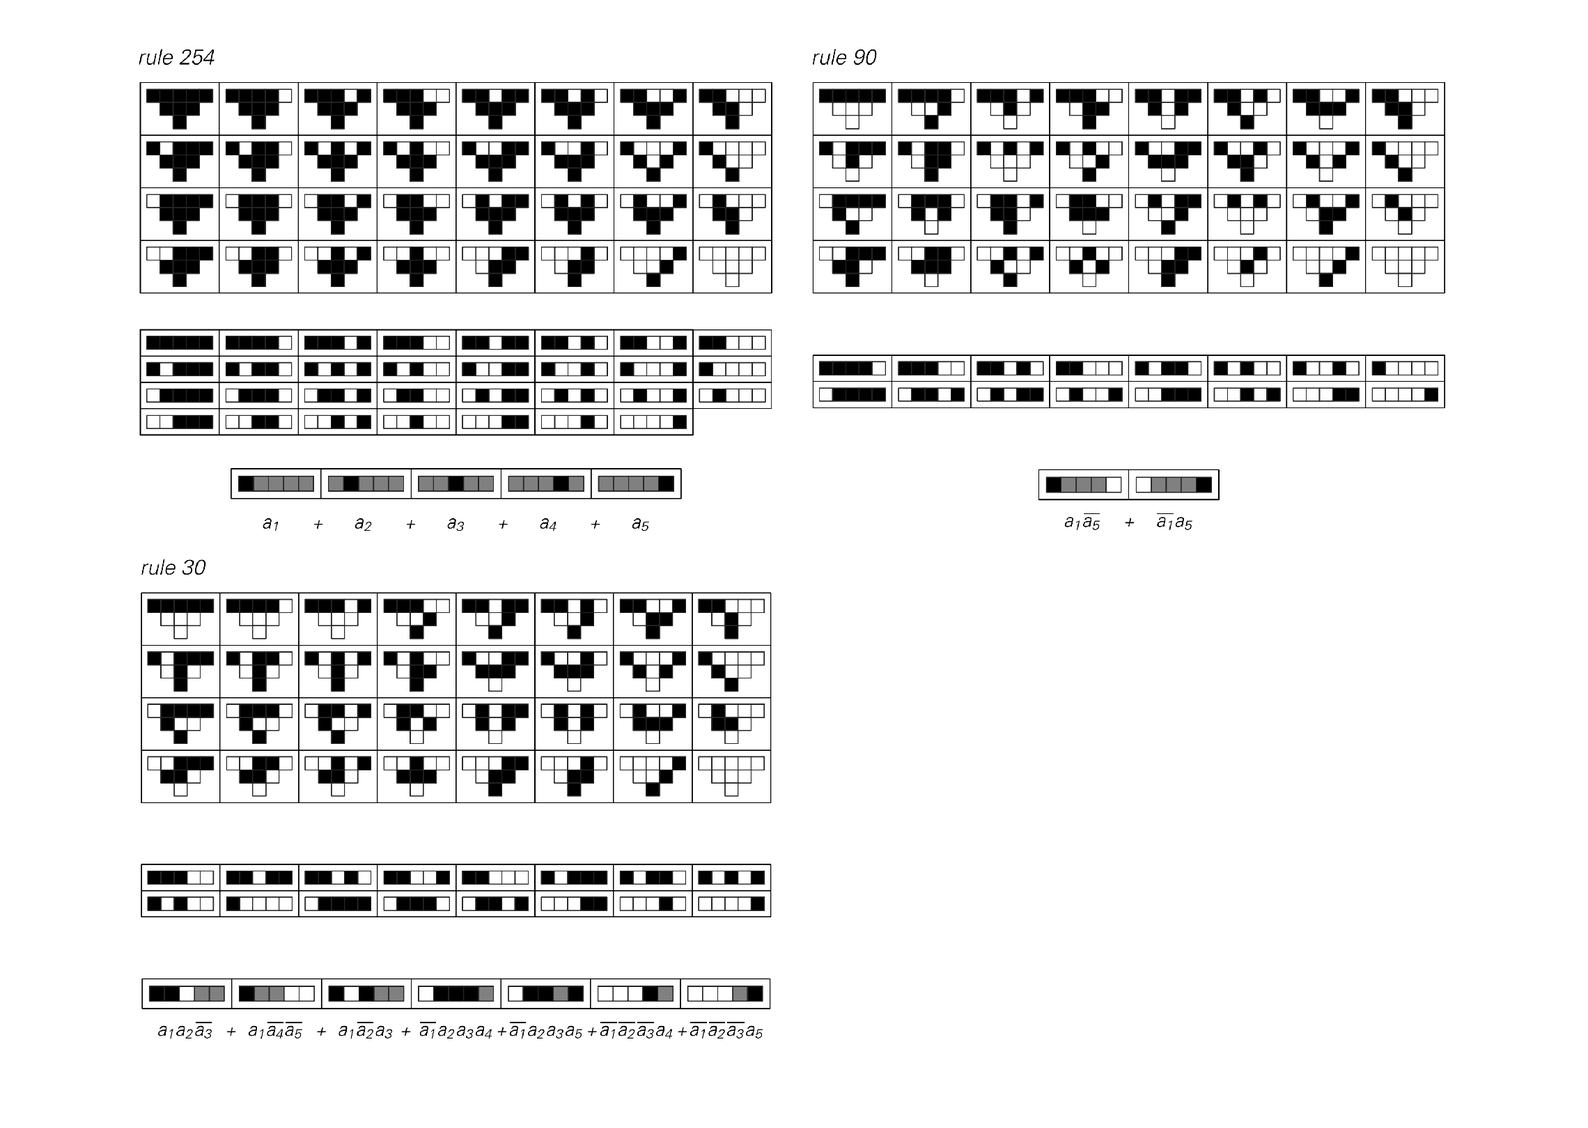 Boolean expression representations of the results from two steps in the evolution of three cellular automata